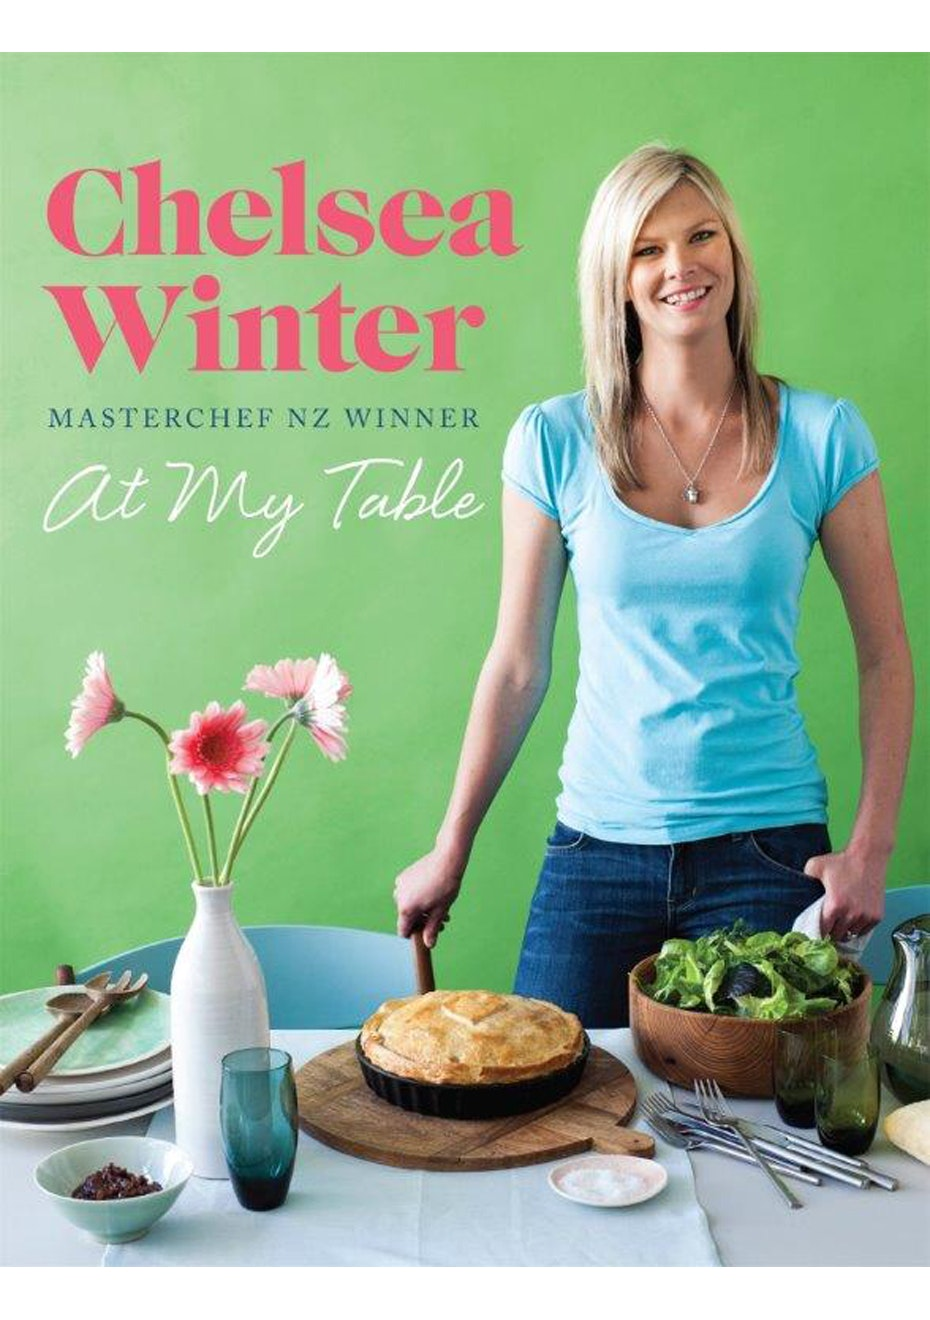 At My Table, by Chelsea Winter